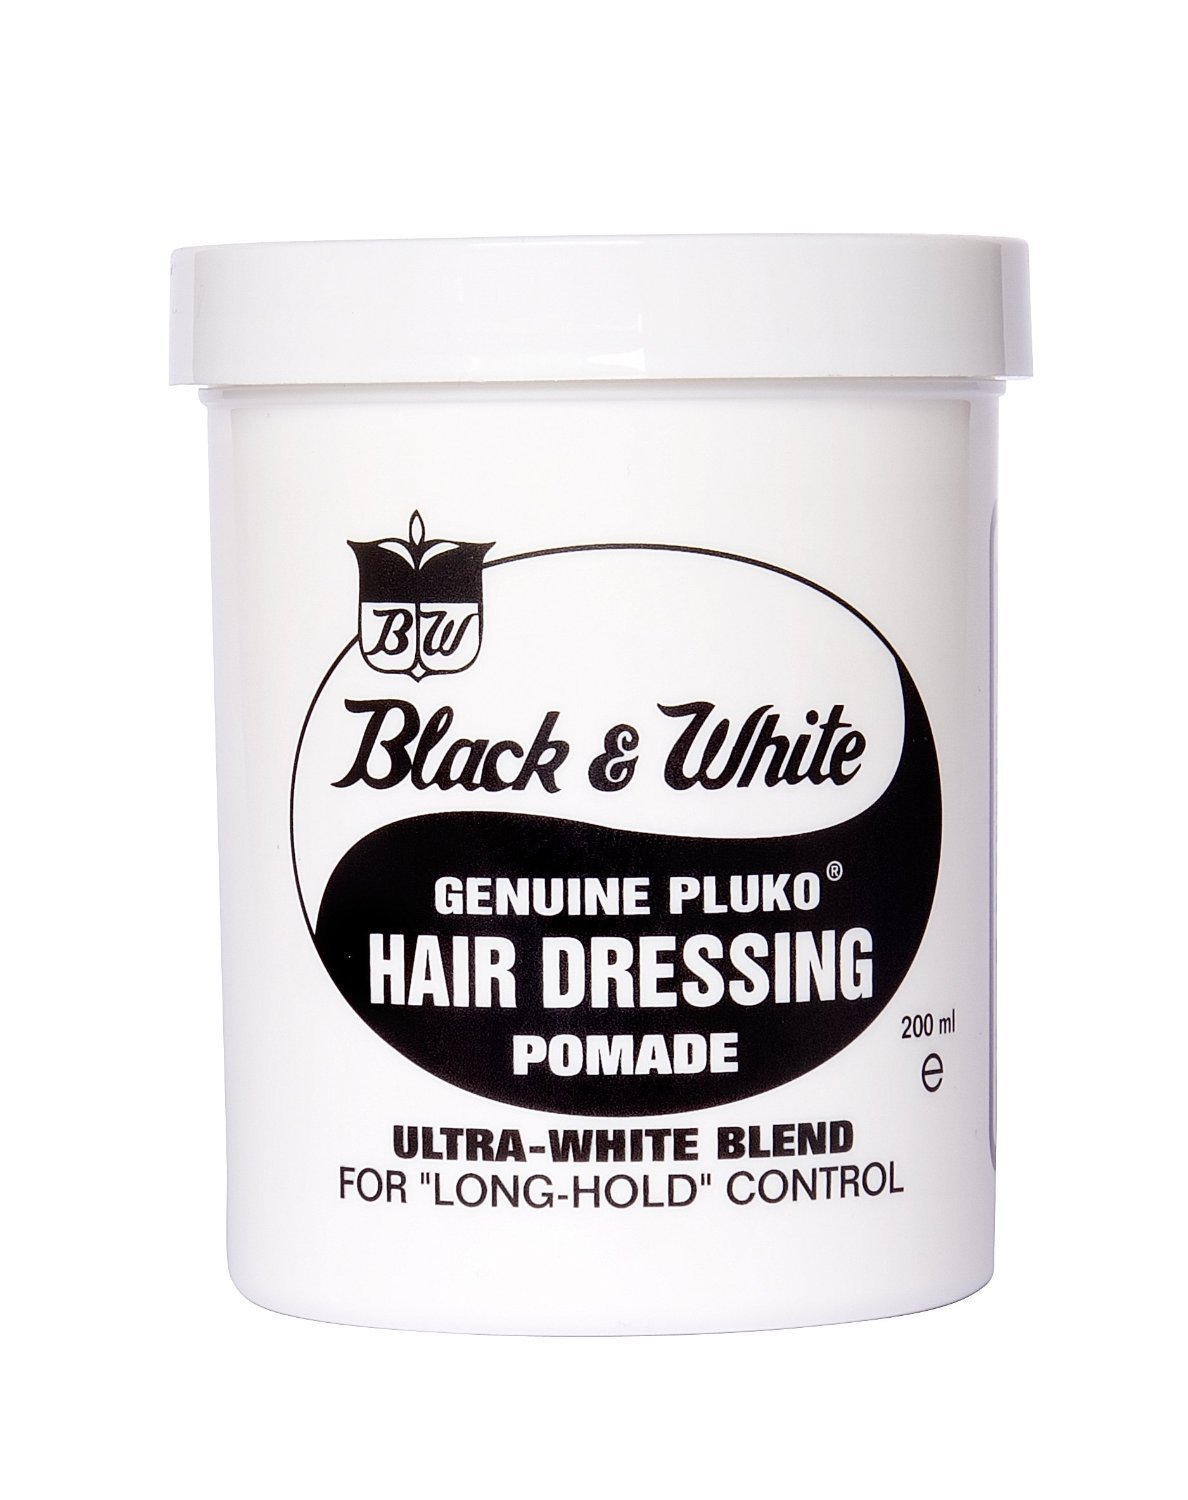 Black and White Pluko Hair Dressing Pomade